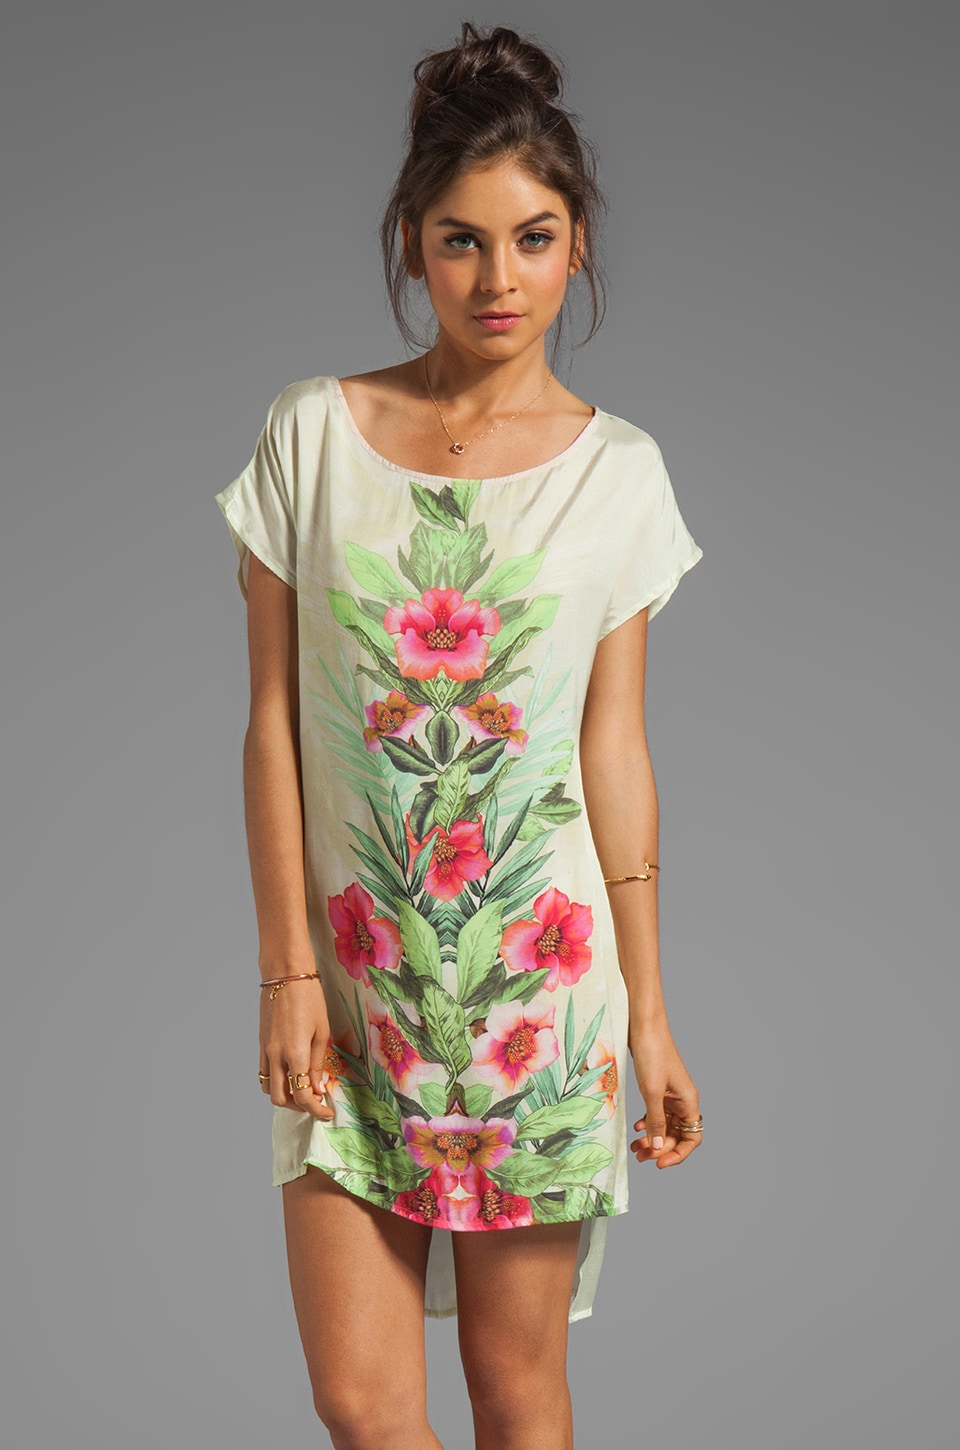 SAM&LAVI Fara Dress in Waikiki Print